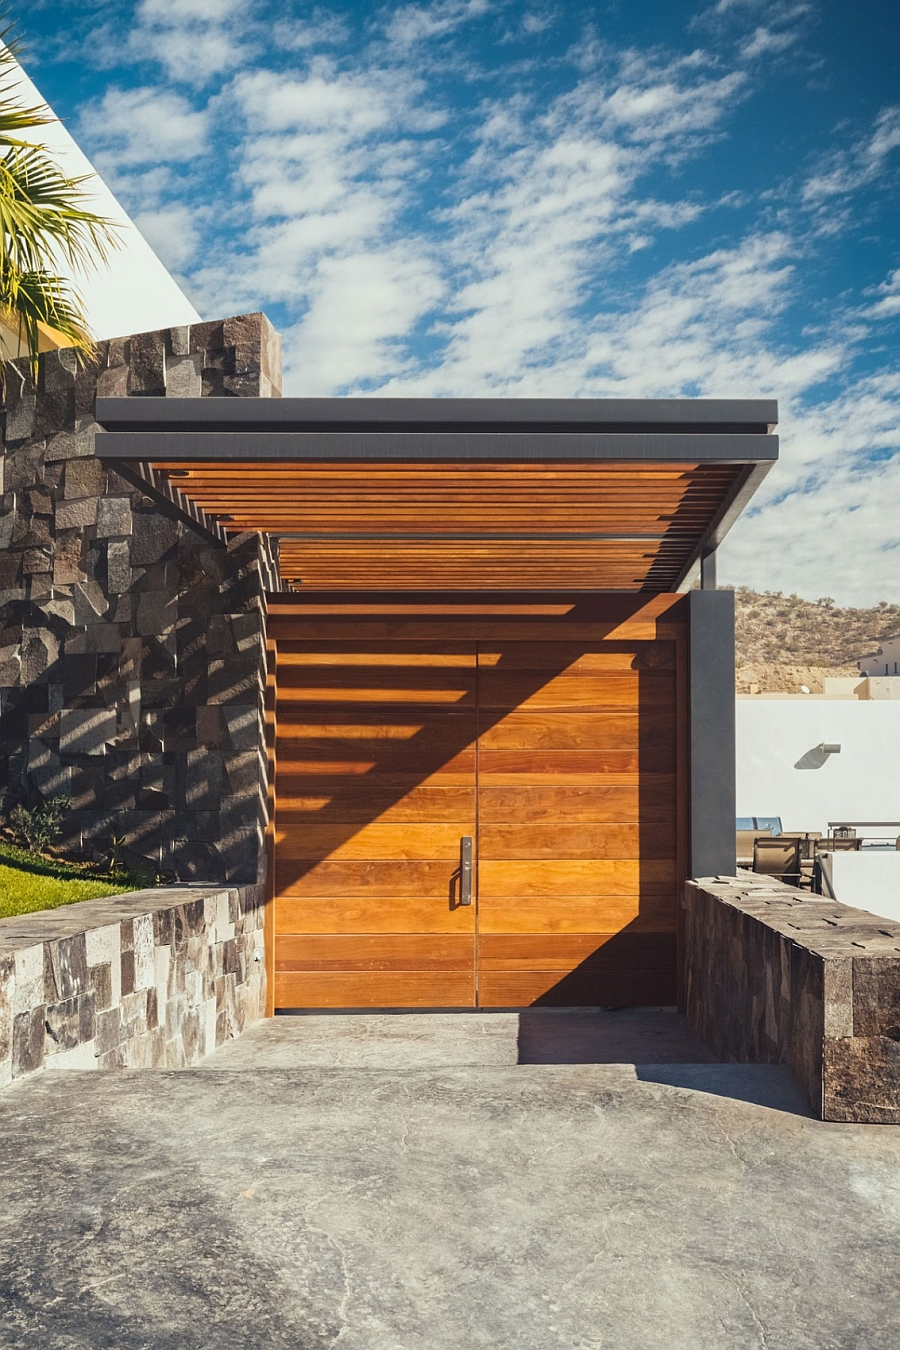 Breathtaking Entrance Into the R35 Residence